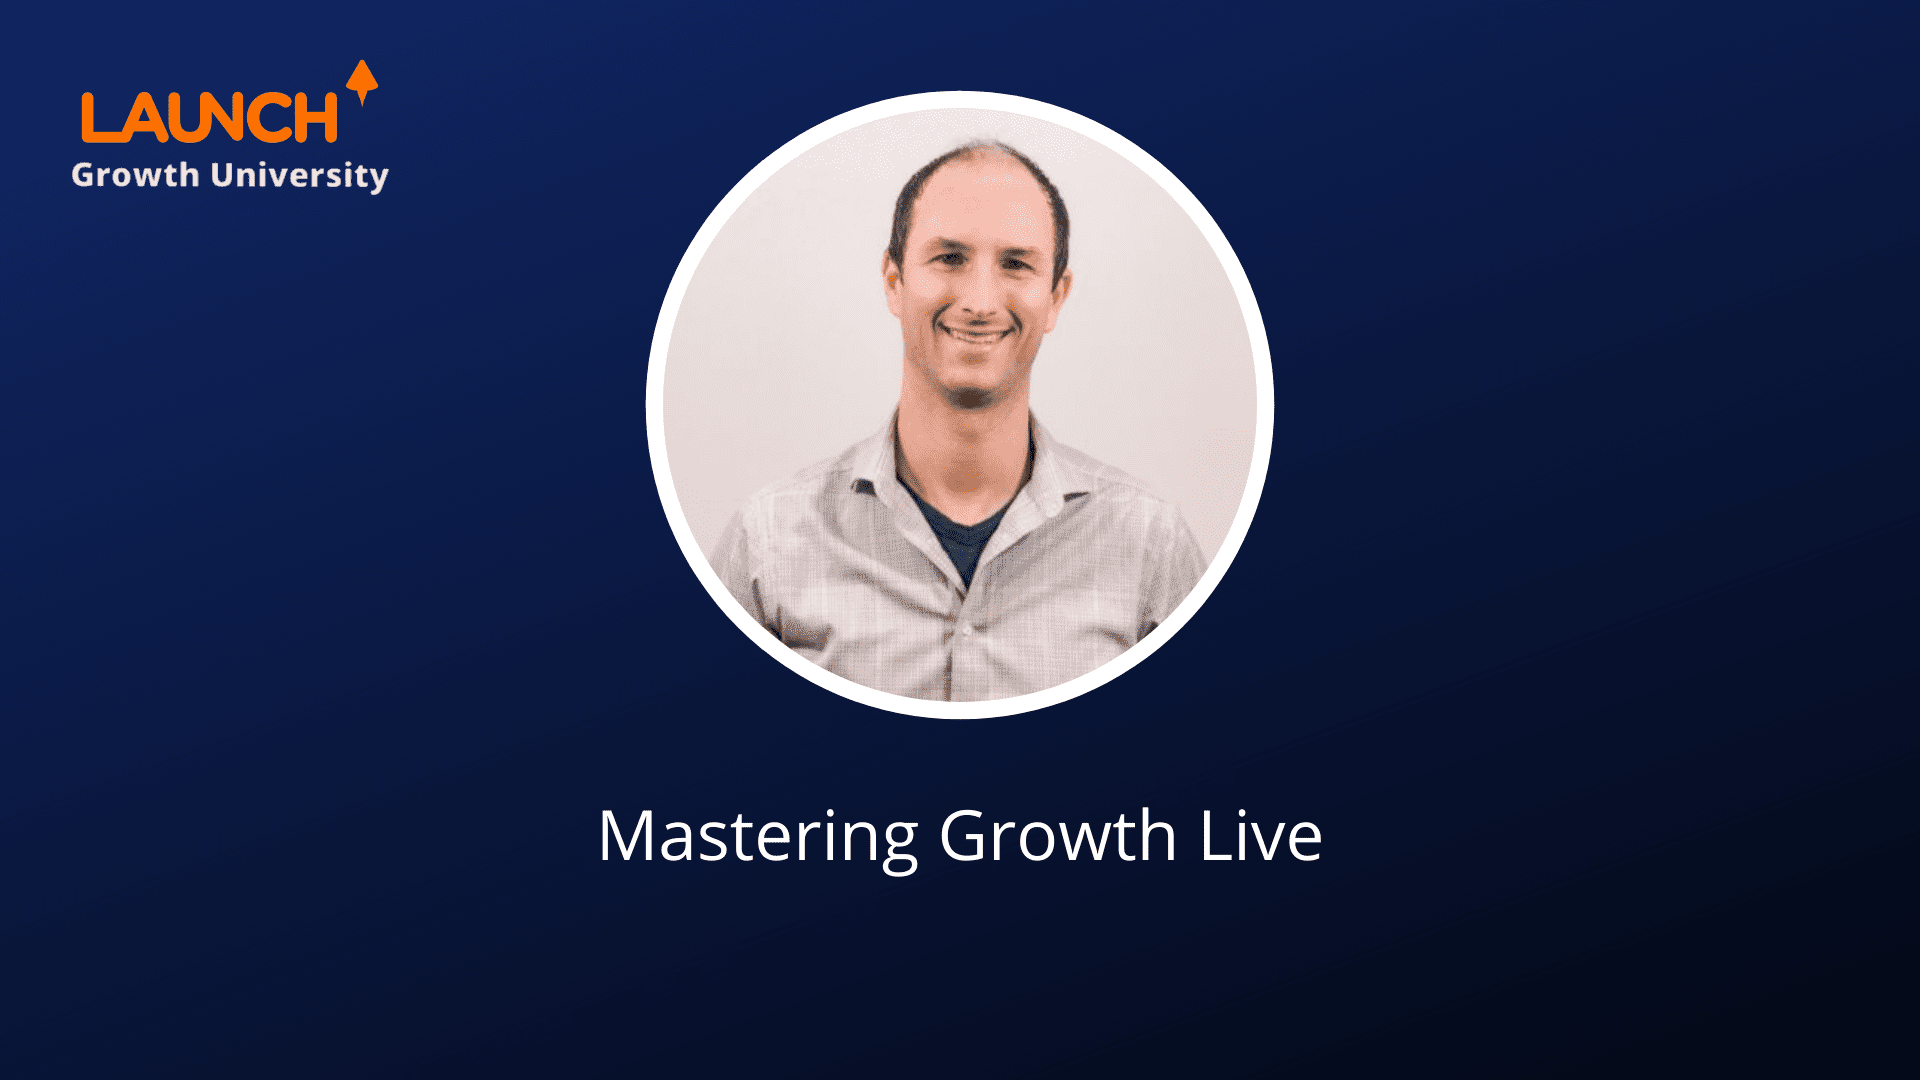 Mastering Growth Live